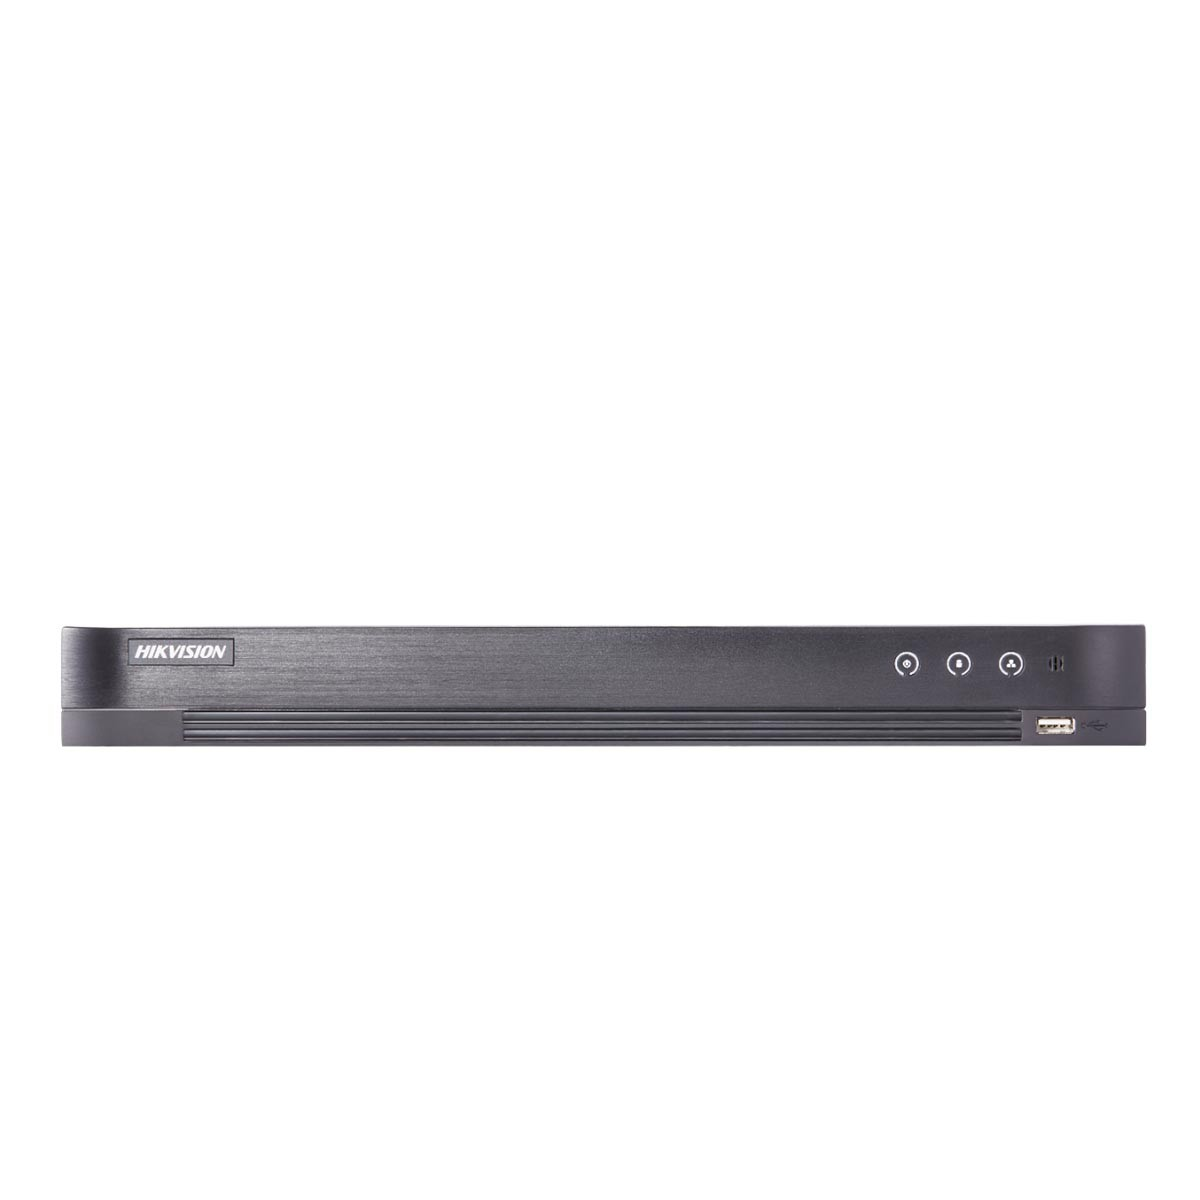 DVR STAND ALONE HIKVISION 2MP 04 CANAIS COM HD 1 TB IDS-7204HQHI-M1/S/TO